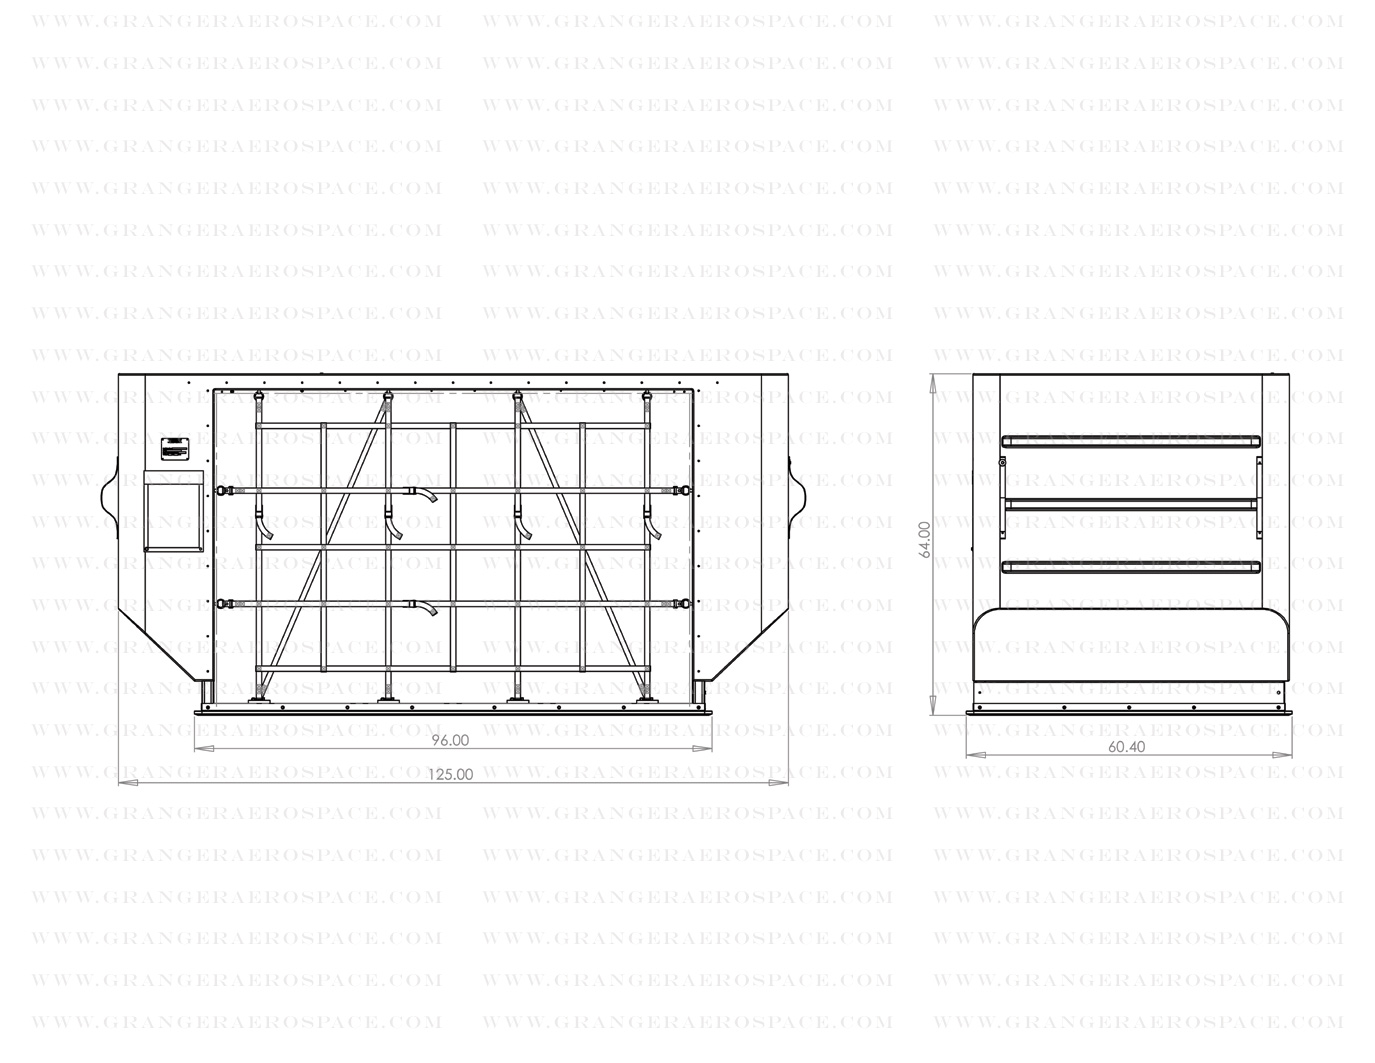 LD 8 Dimensions, LD 8 Air Cargo Container Dimensions, DQF dimensions